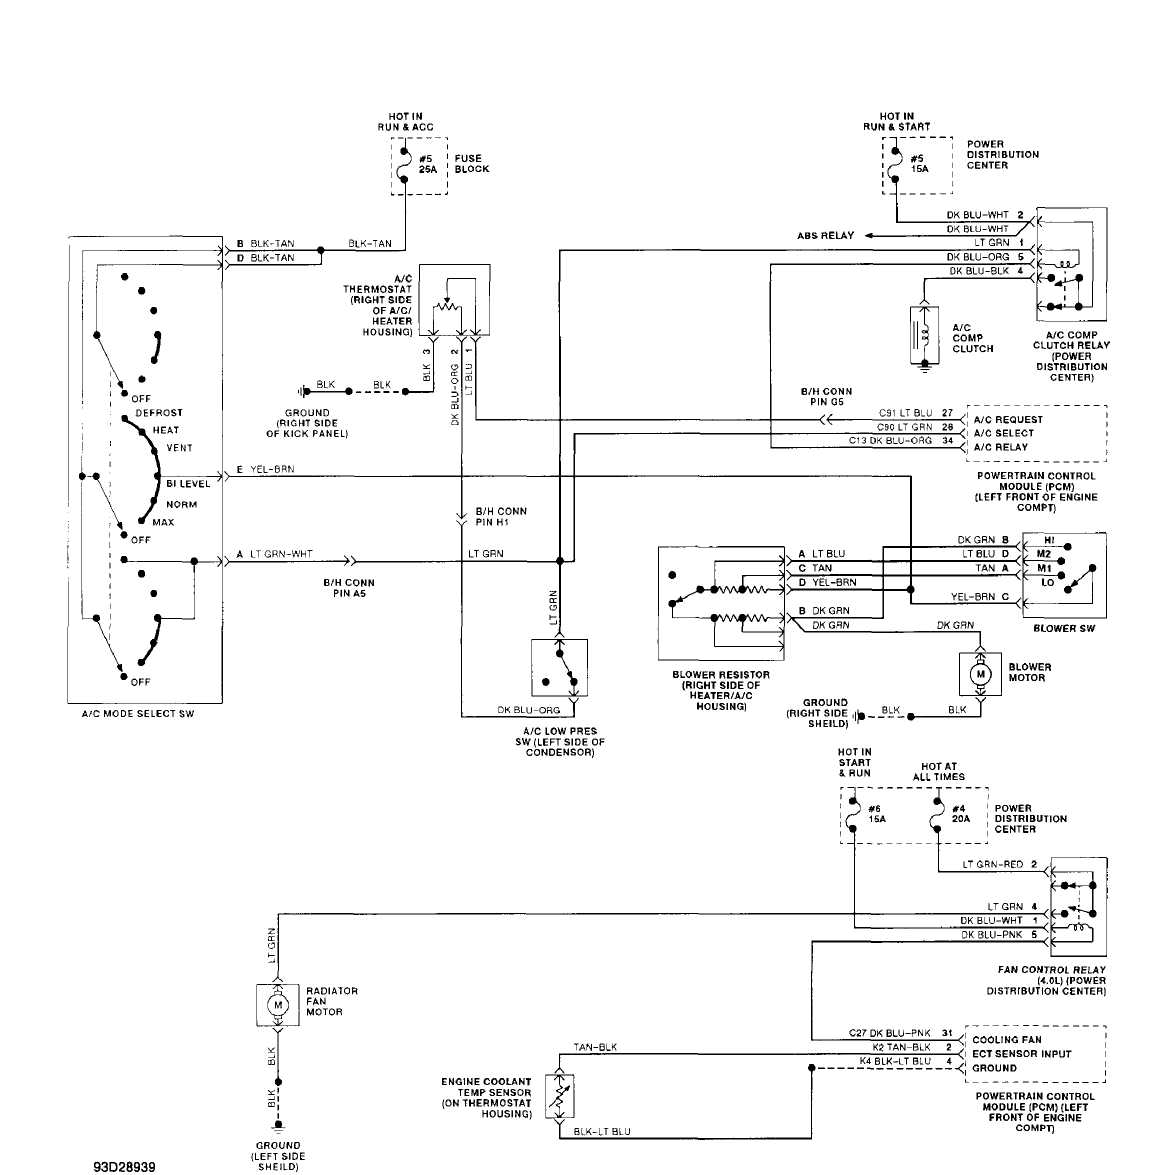 1999 jeep cherokee xj stereo wiring diagram cement manufacturing process free engine image